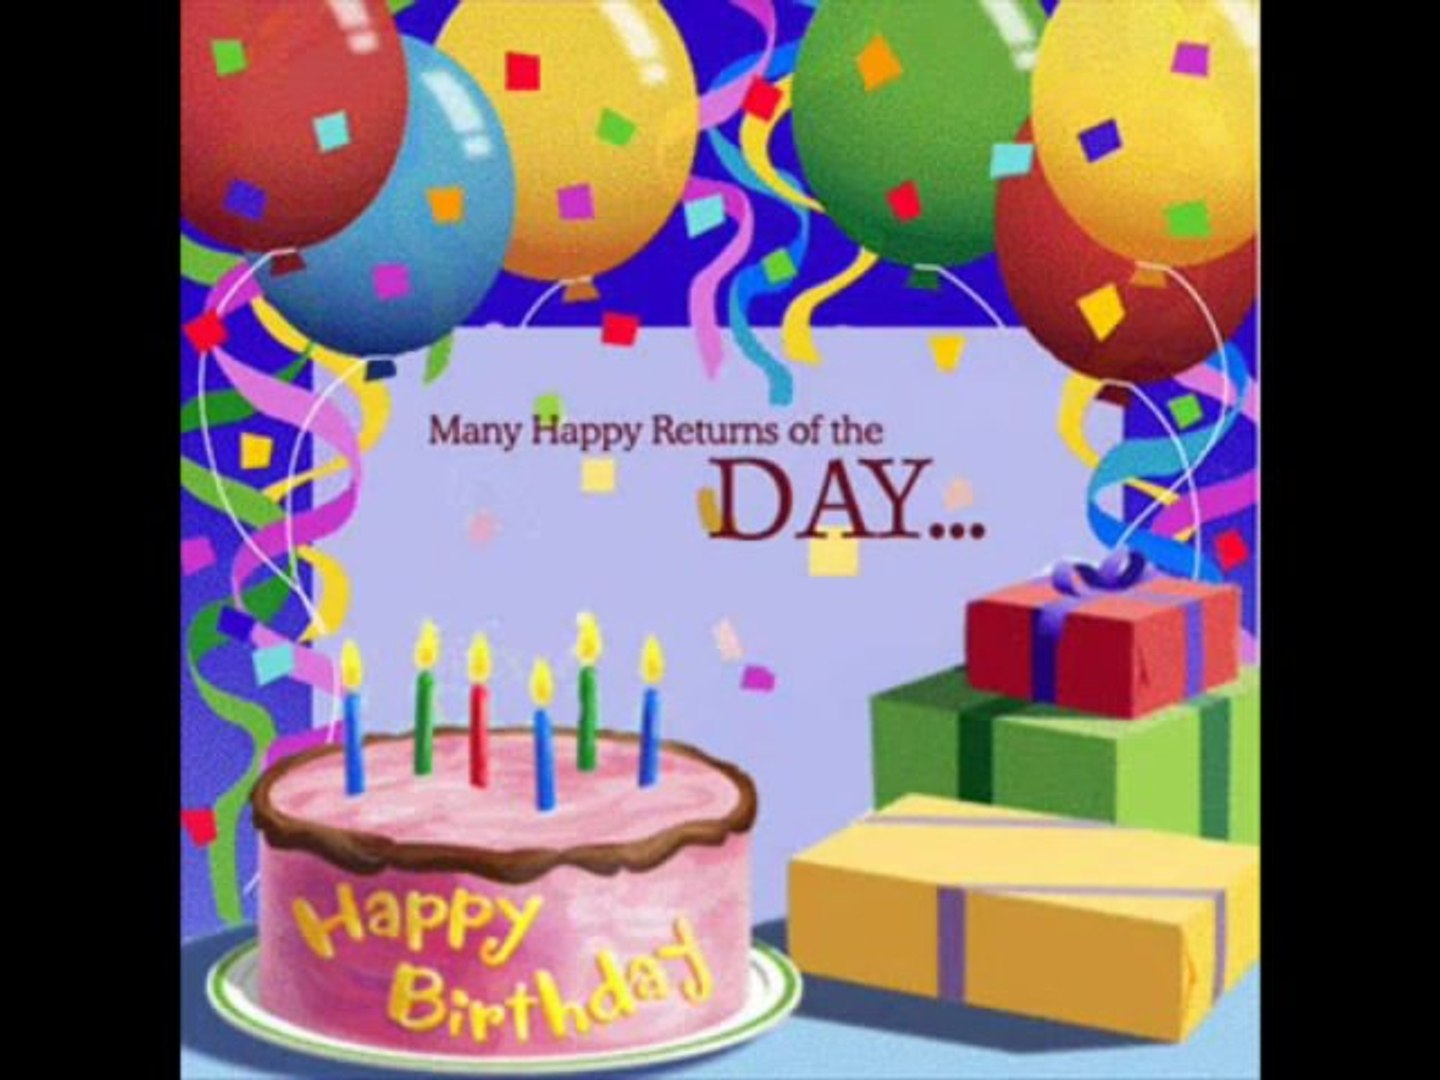 Remarkable Best Happy Birthday Song Video Dailymotion Personalised Birthday Cards Petedlily Jamesorg